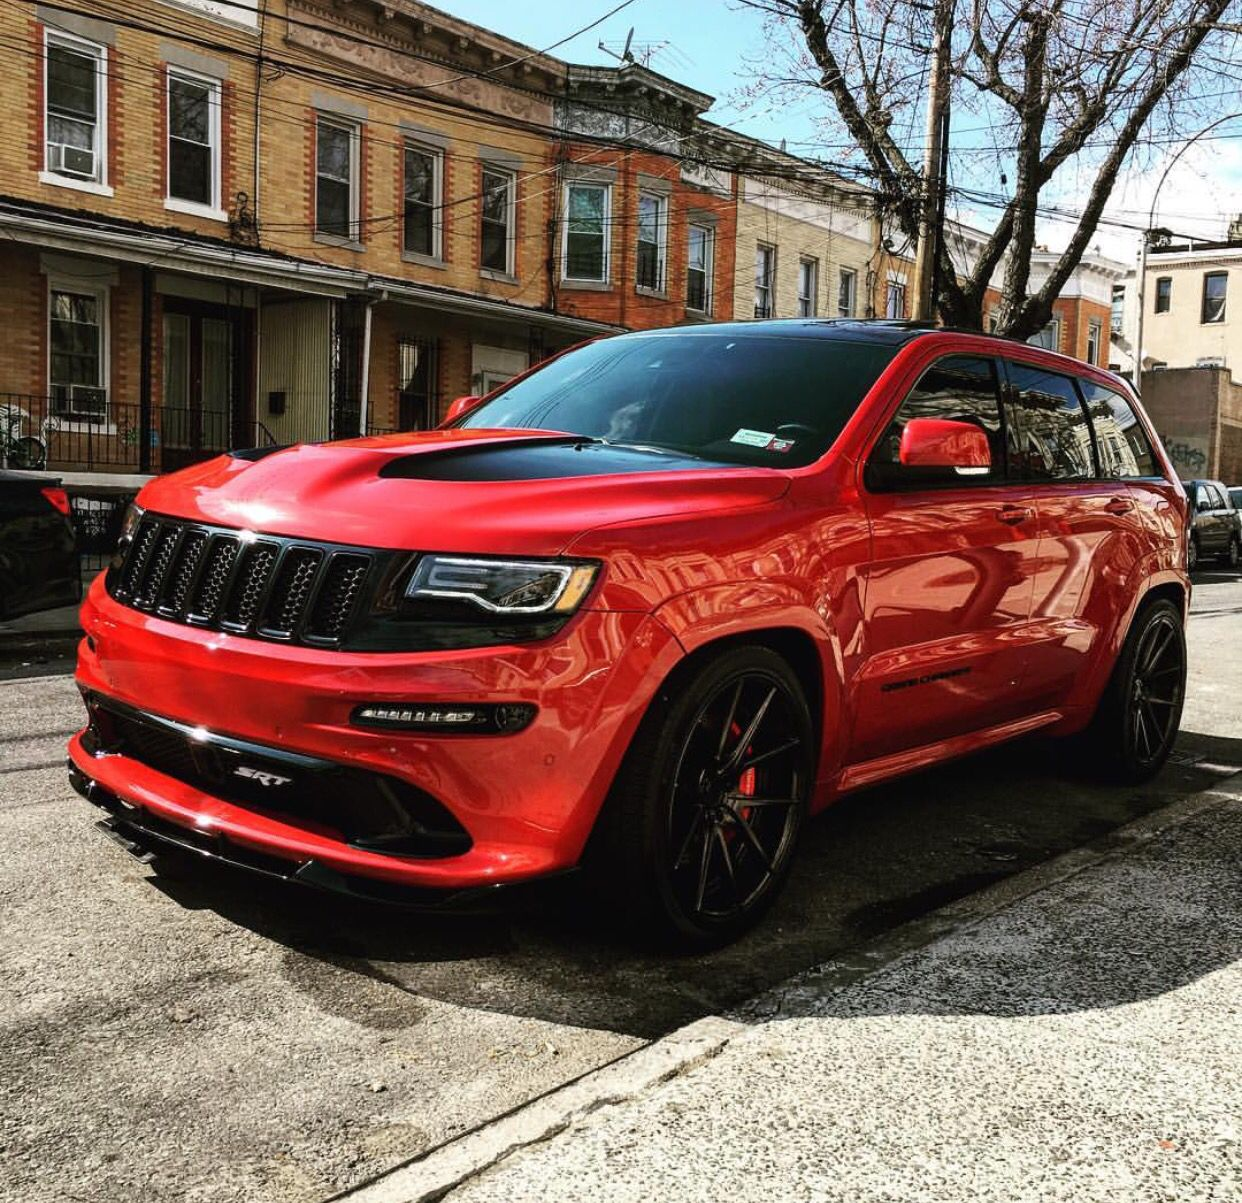 Jeep Grand Cherokee Can T Get Better Looking Than This Www Premierchryslerjeepofplacentia Net Jeep Cherokee Srt8 Jeep Srt8 Jeep Cherokee